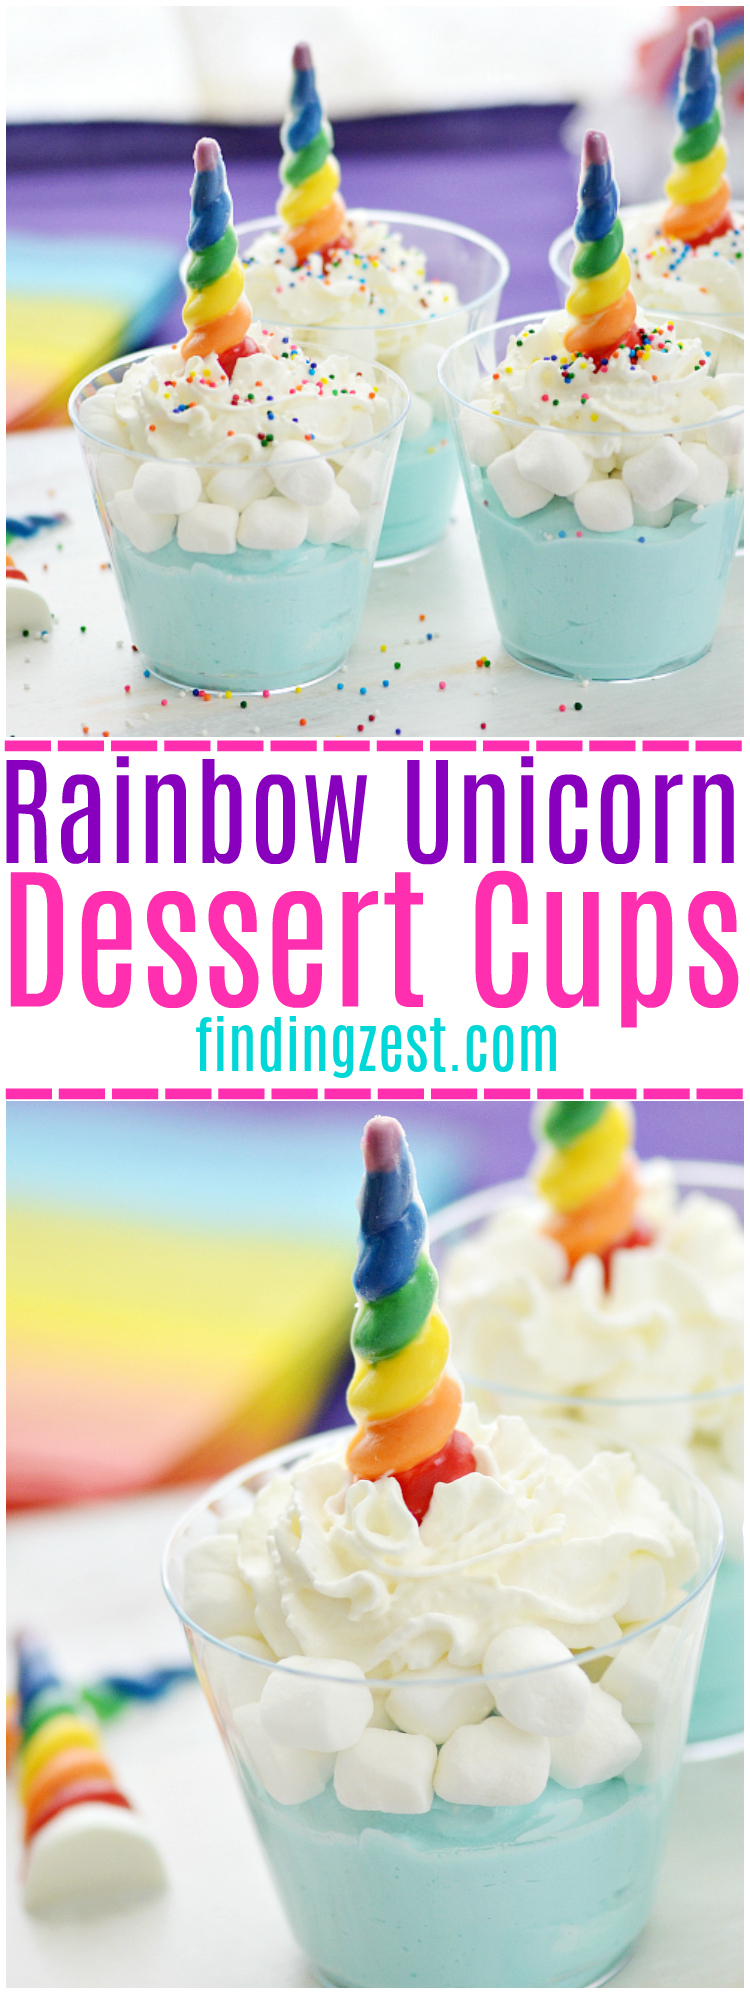 Unicorns and rainbows is killer combination, especially for a unicorn party! These fun rainbow unicorn dessert cups feature blue mousse, marshmallows, whipped cream and sprinkles. The star of this dessert are the chocolate rainbow unicorn horns! I'll show you how to make them for a fun unicorn party dessert.